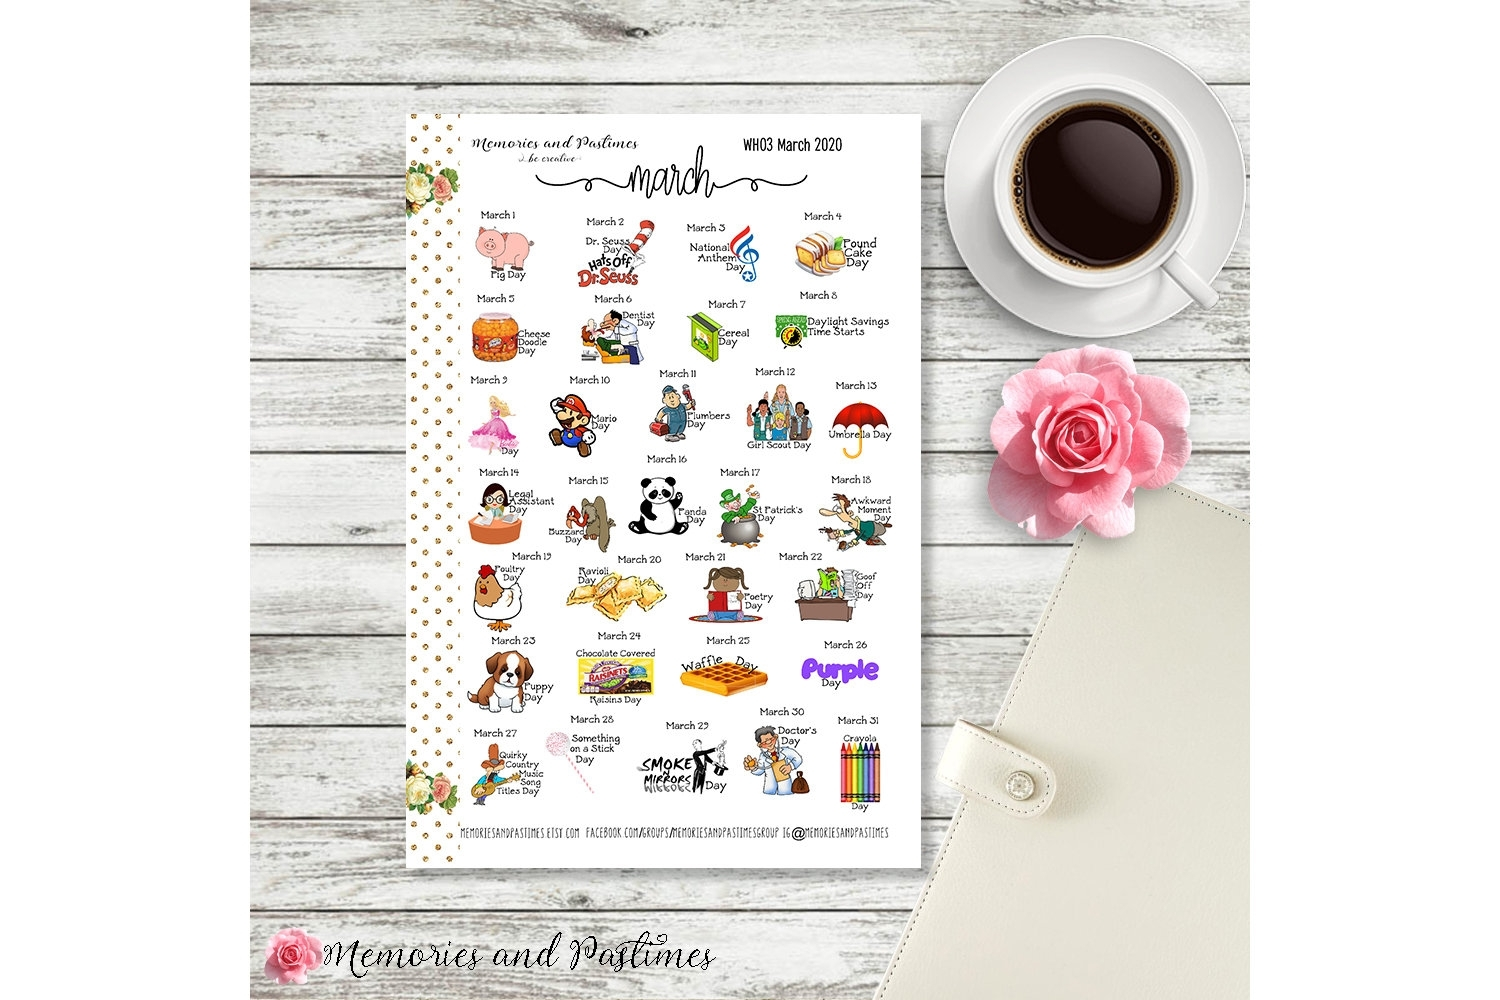 Celebrate March 2020 Planner Stickers National Holiday | Etsy intended for Special Days In 2020